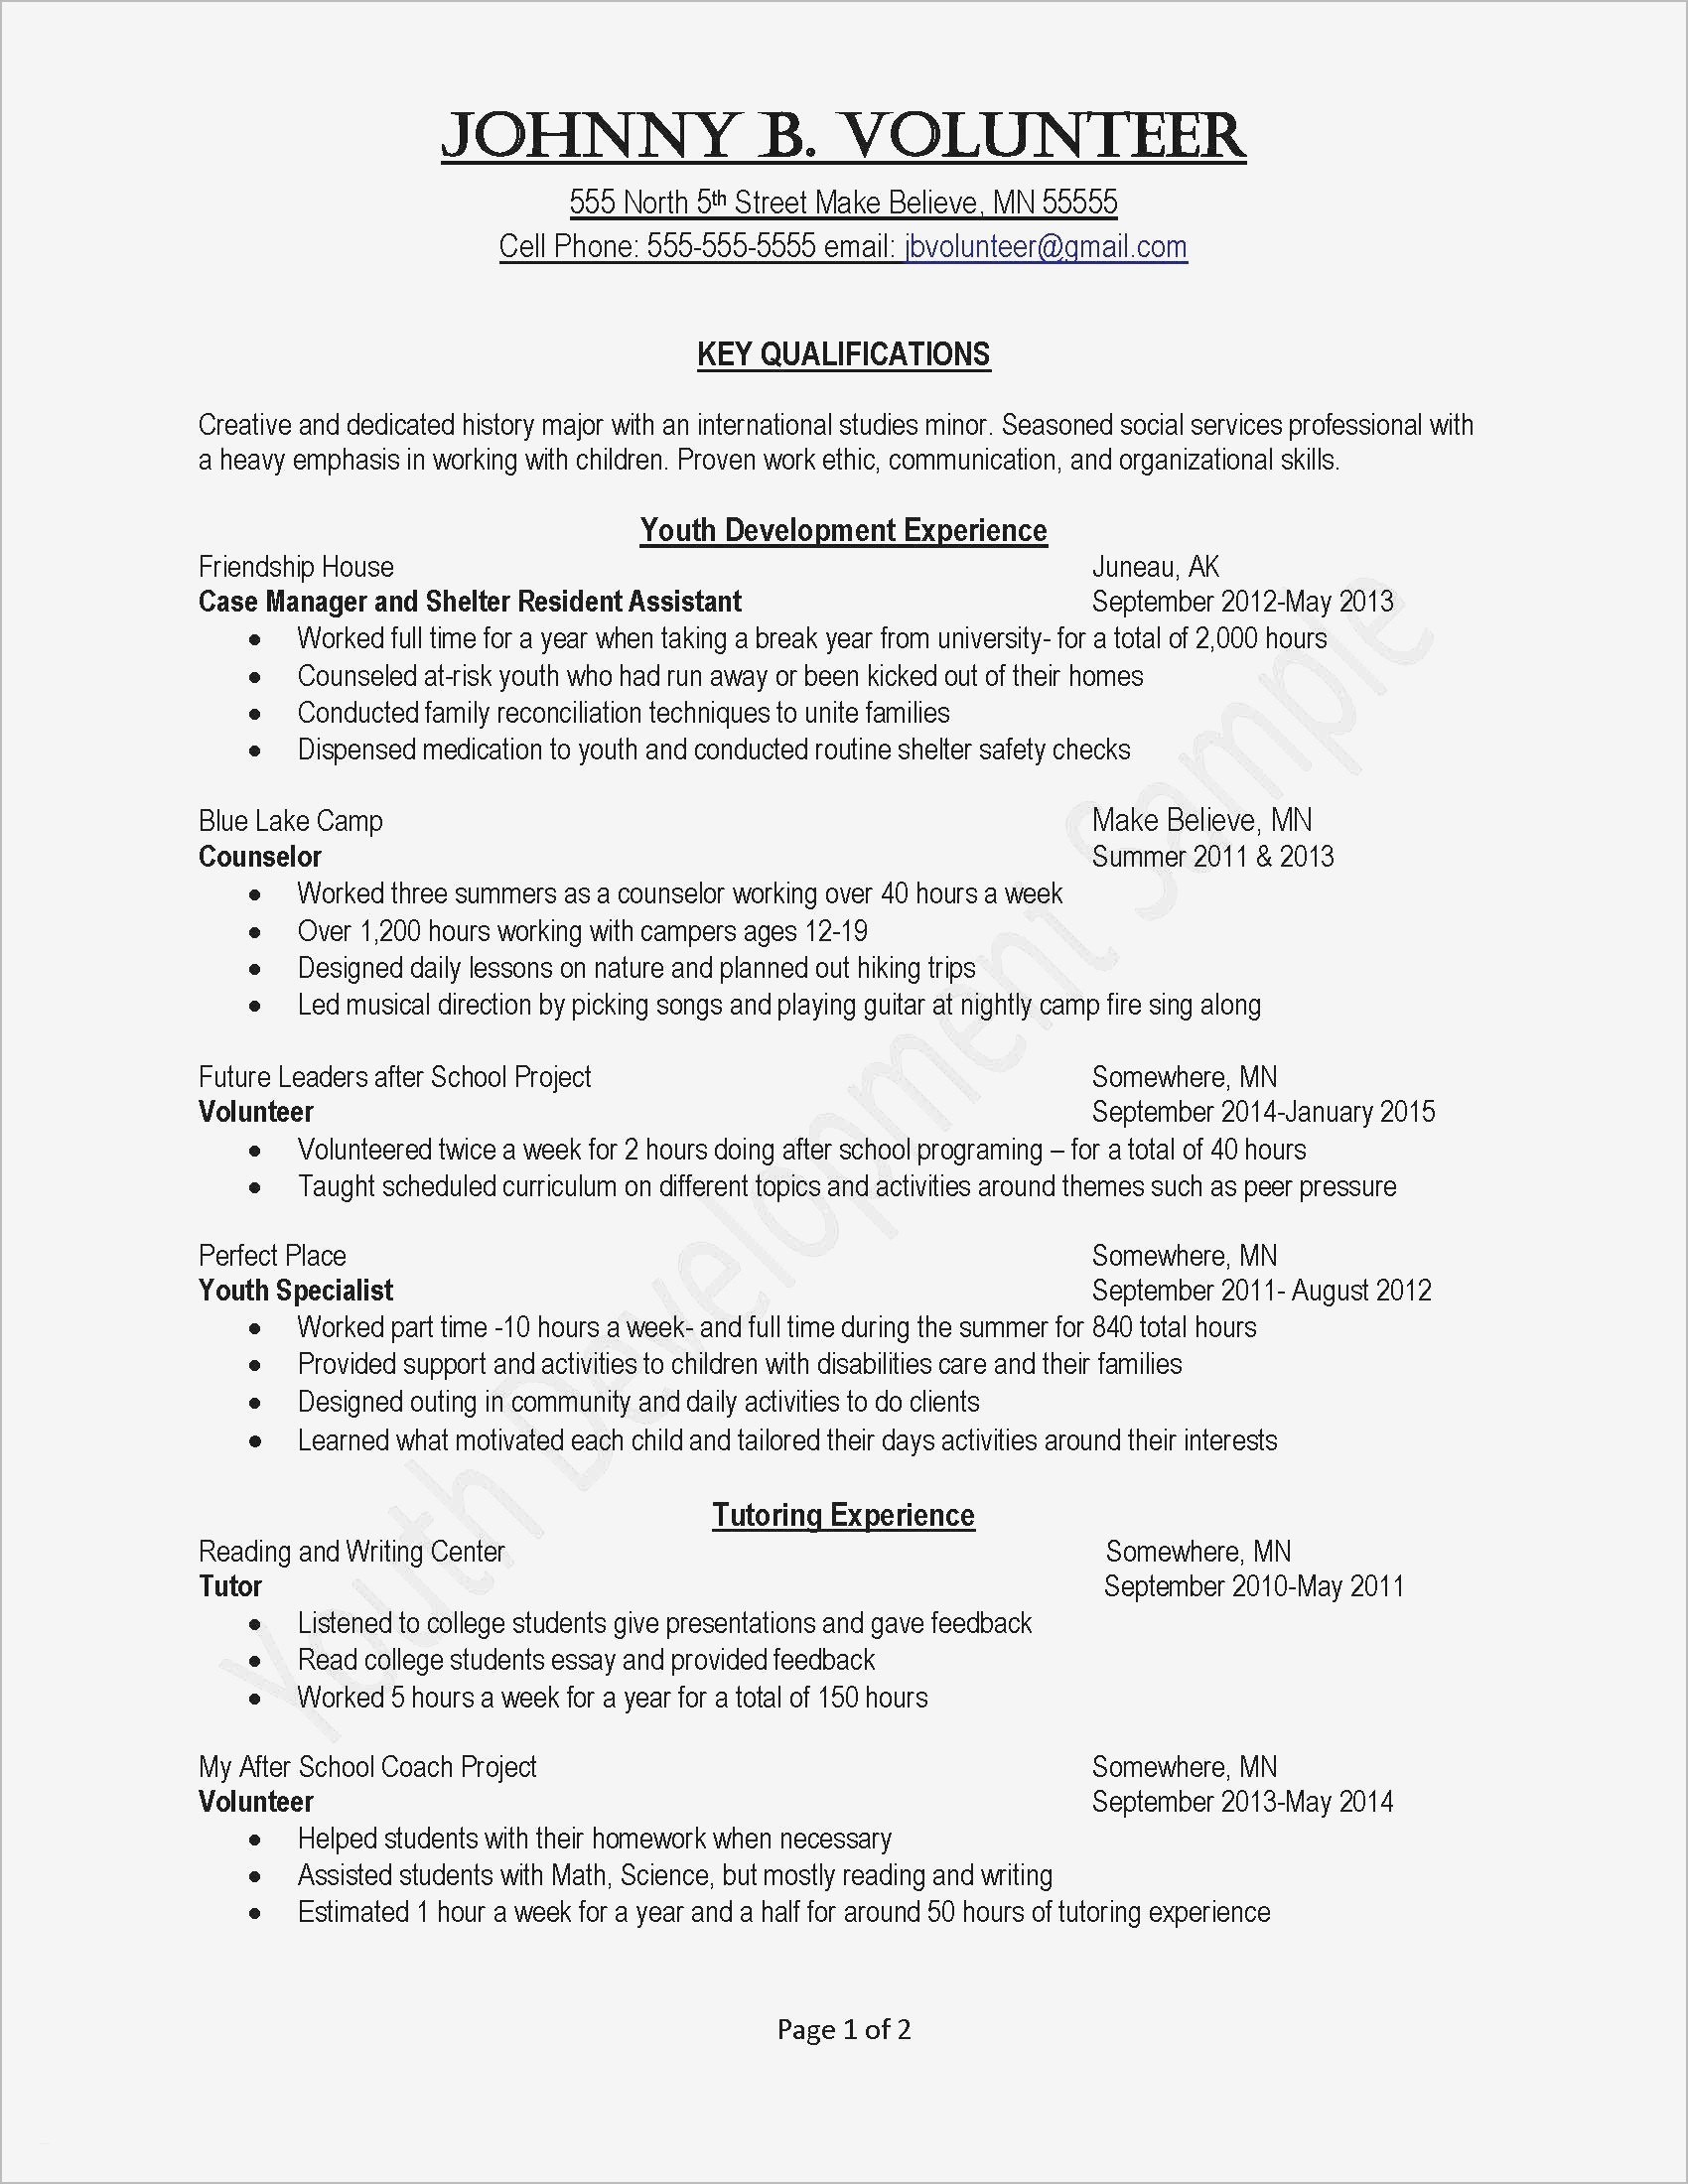 Cover Letter Template Mac - Resume Cover Letter format Beautiful Lovely Job Fer Letter Template